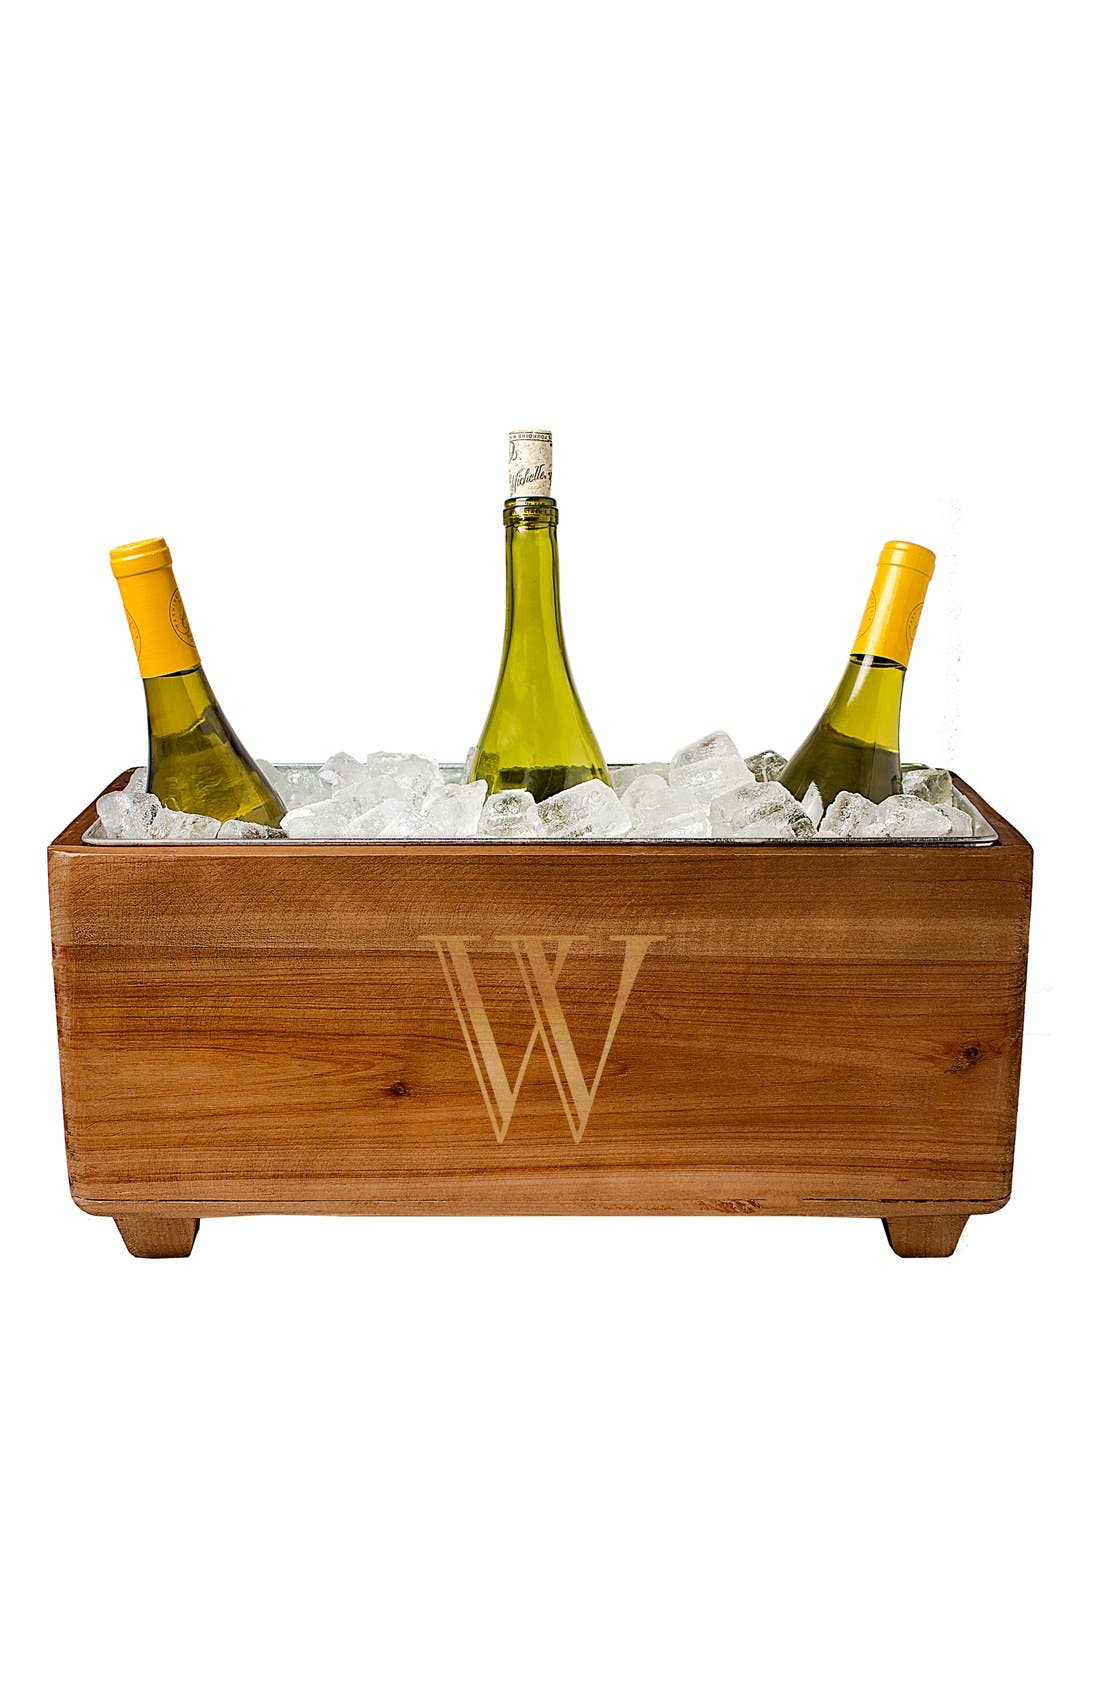 Monogram Wood Wine Trough,                             Alternate thumbnail 3, color,                             200